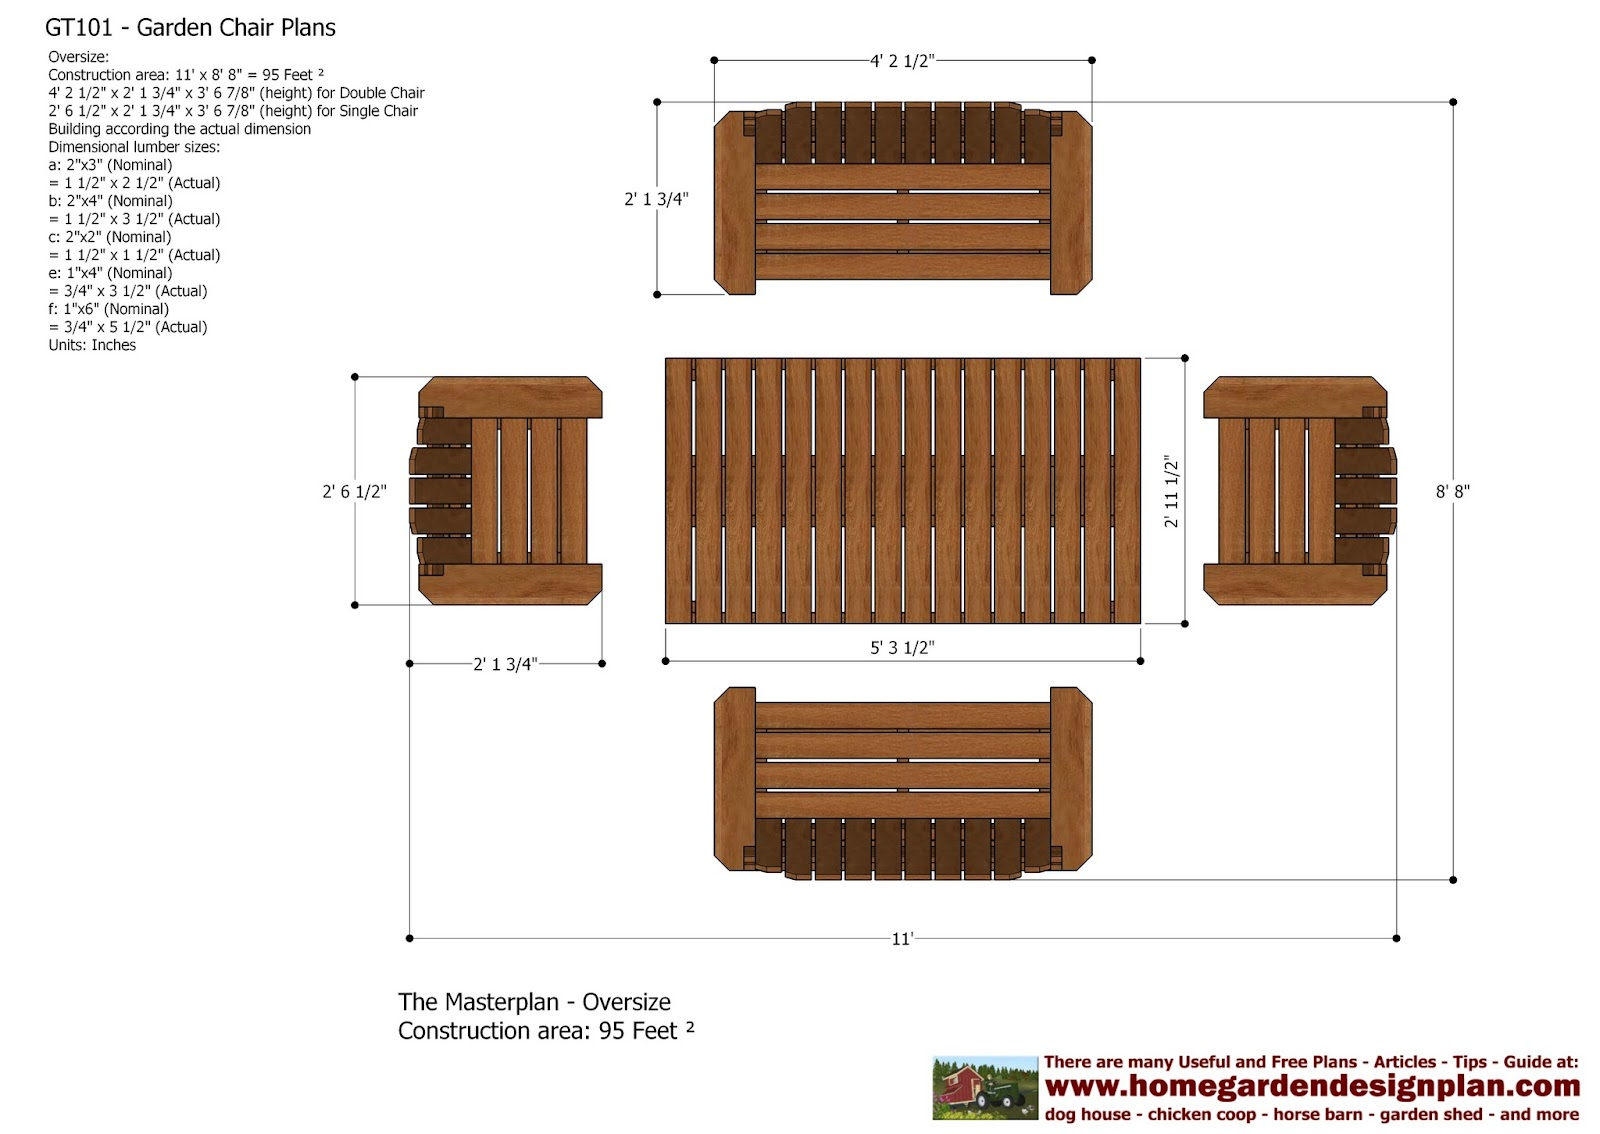 ... +teak+tables+design+-+woodworking+plans+-+outdoor+furniture+plans.jpg